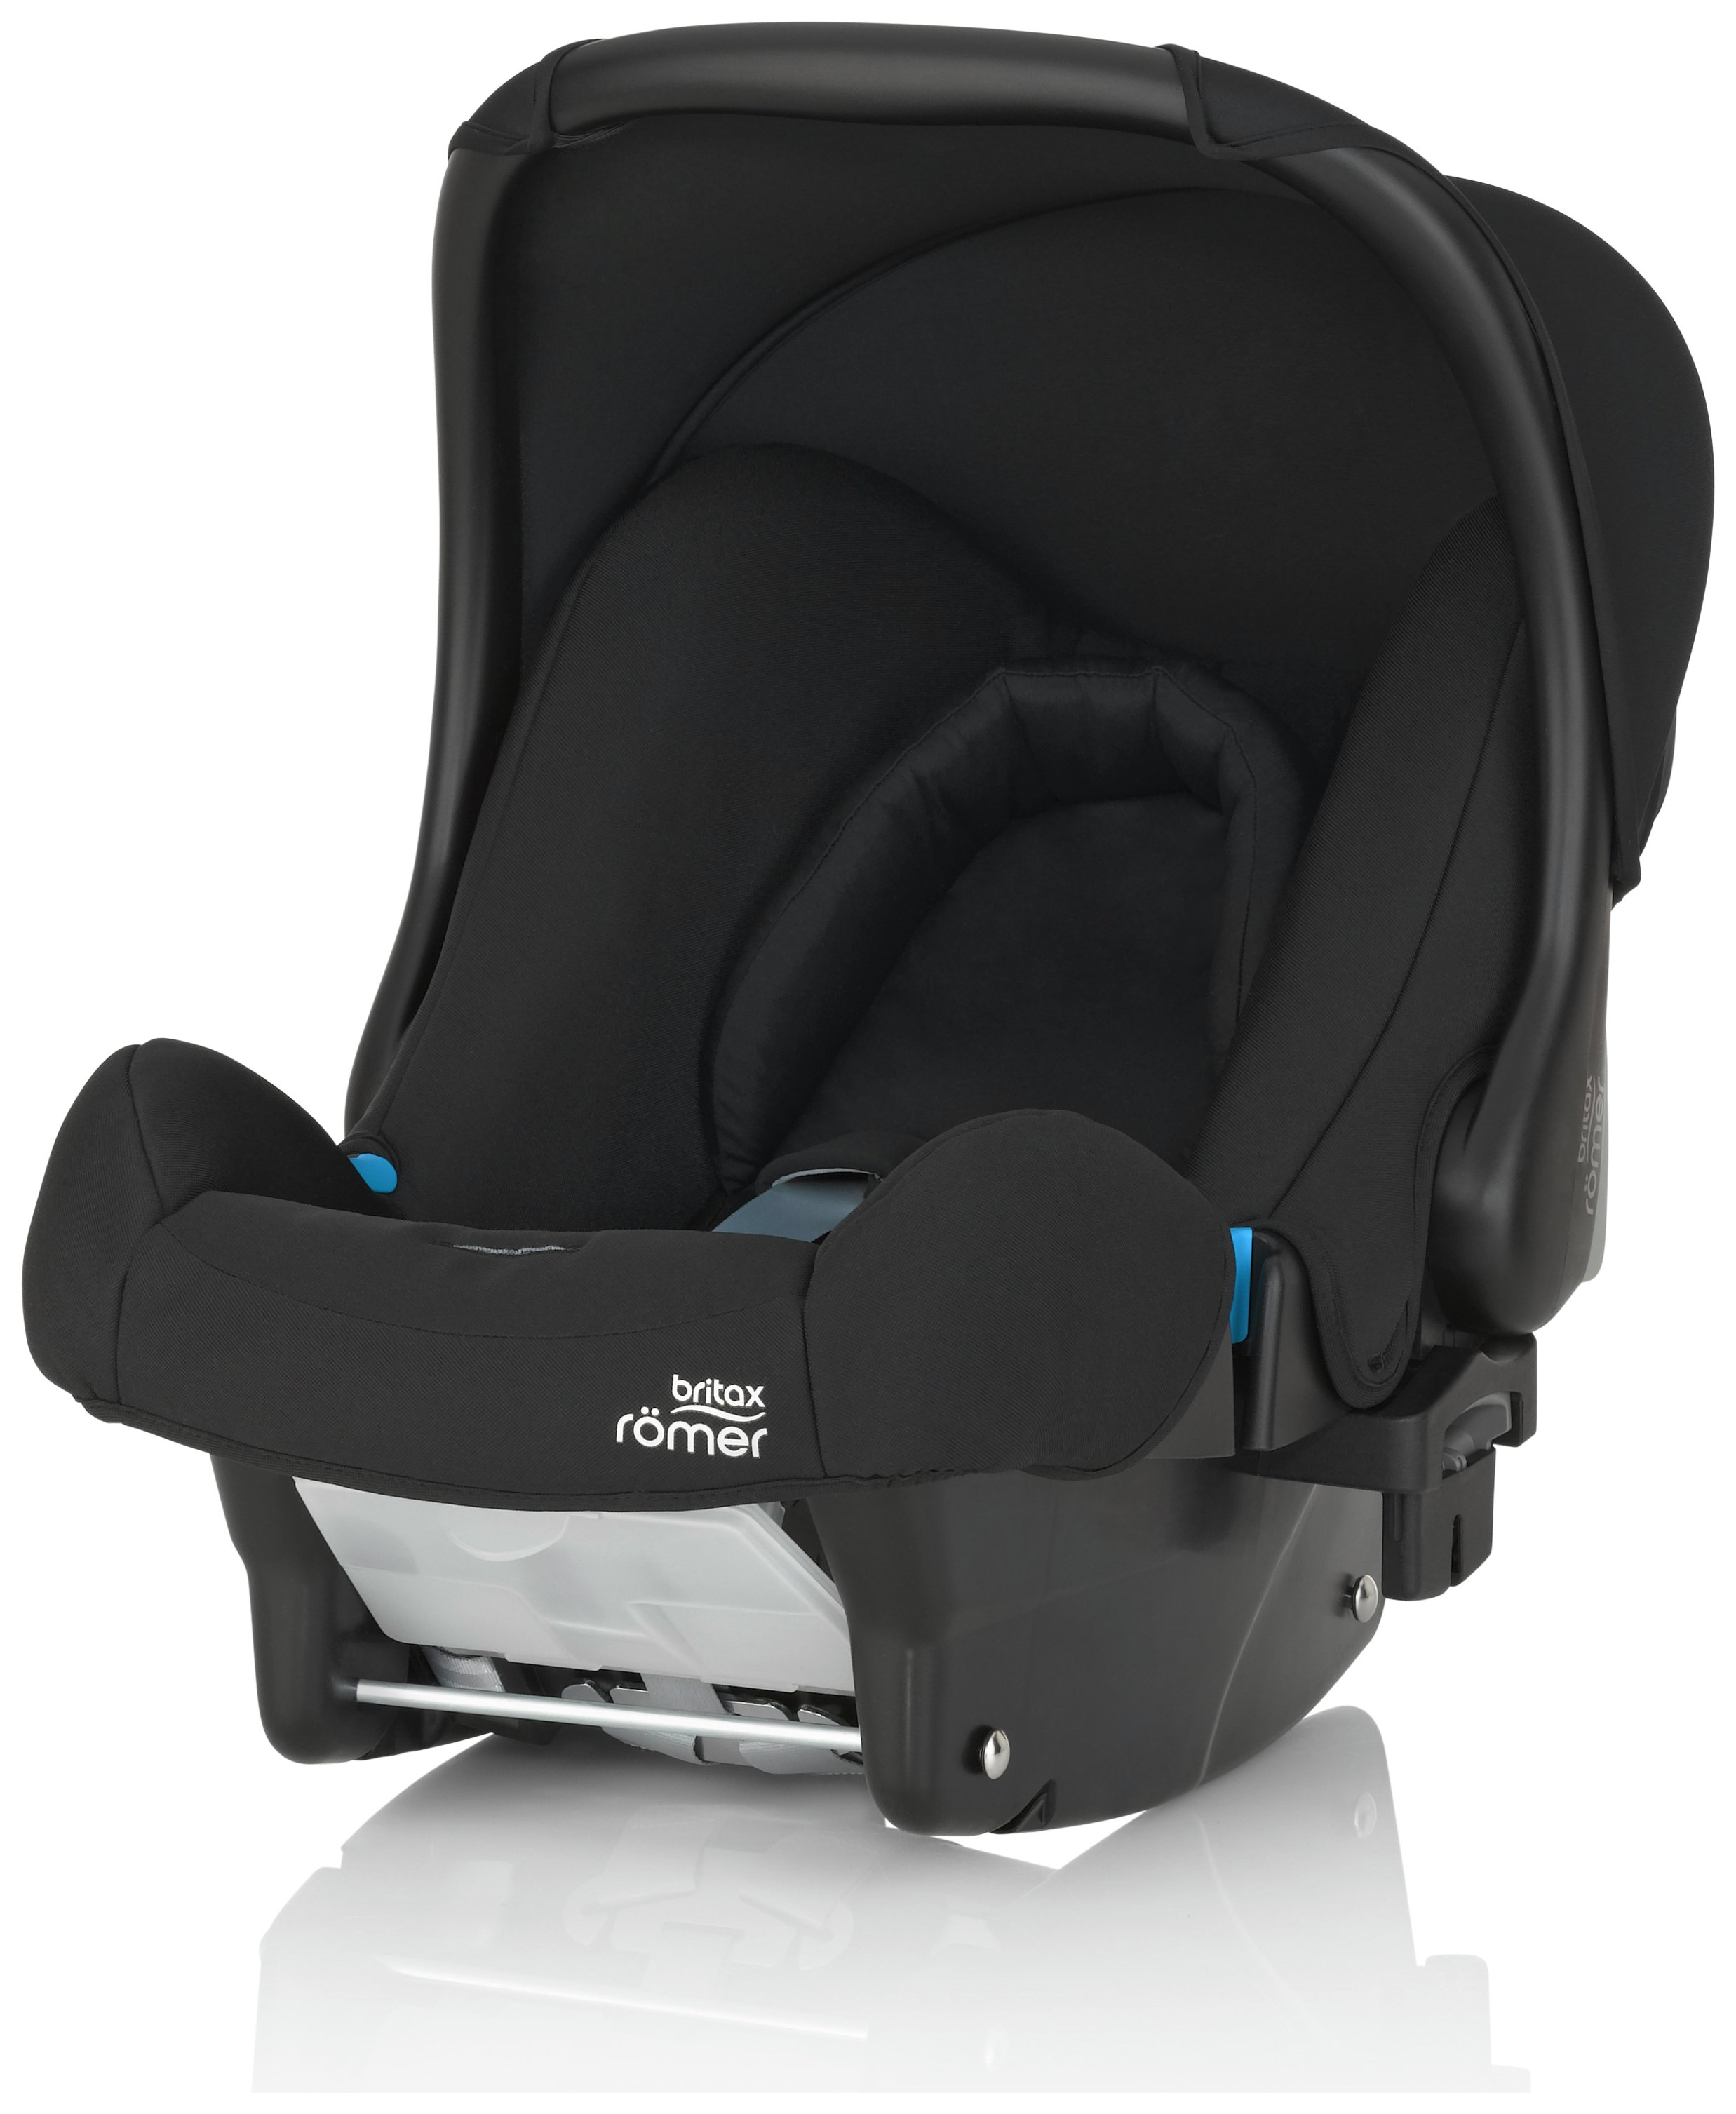 Britax Romer BABY-SAFE Group 0+ Car Seat – Cosmos Black